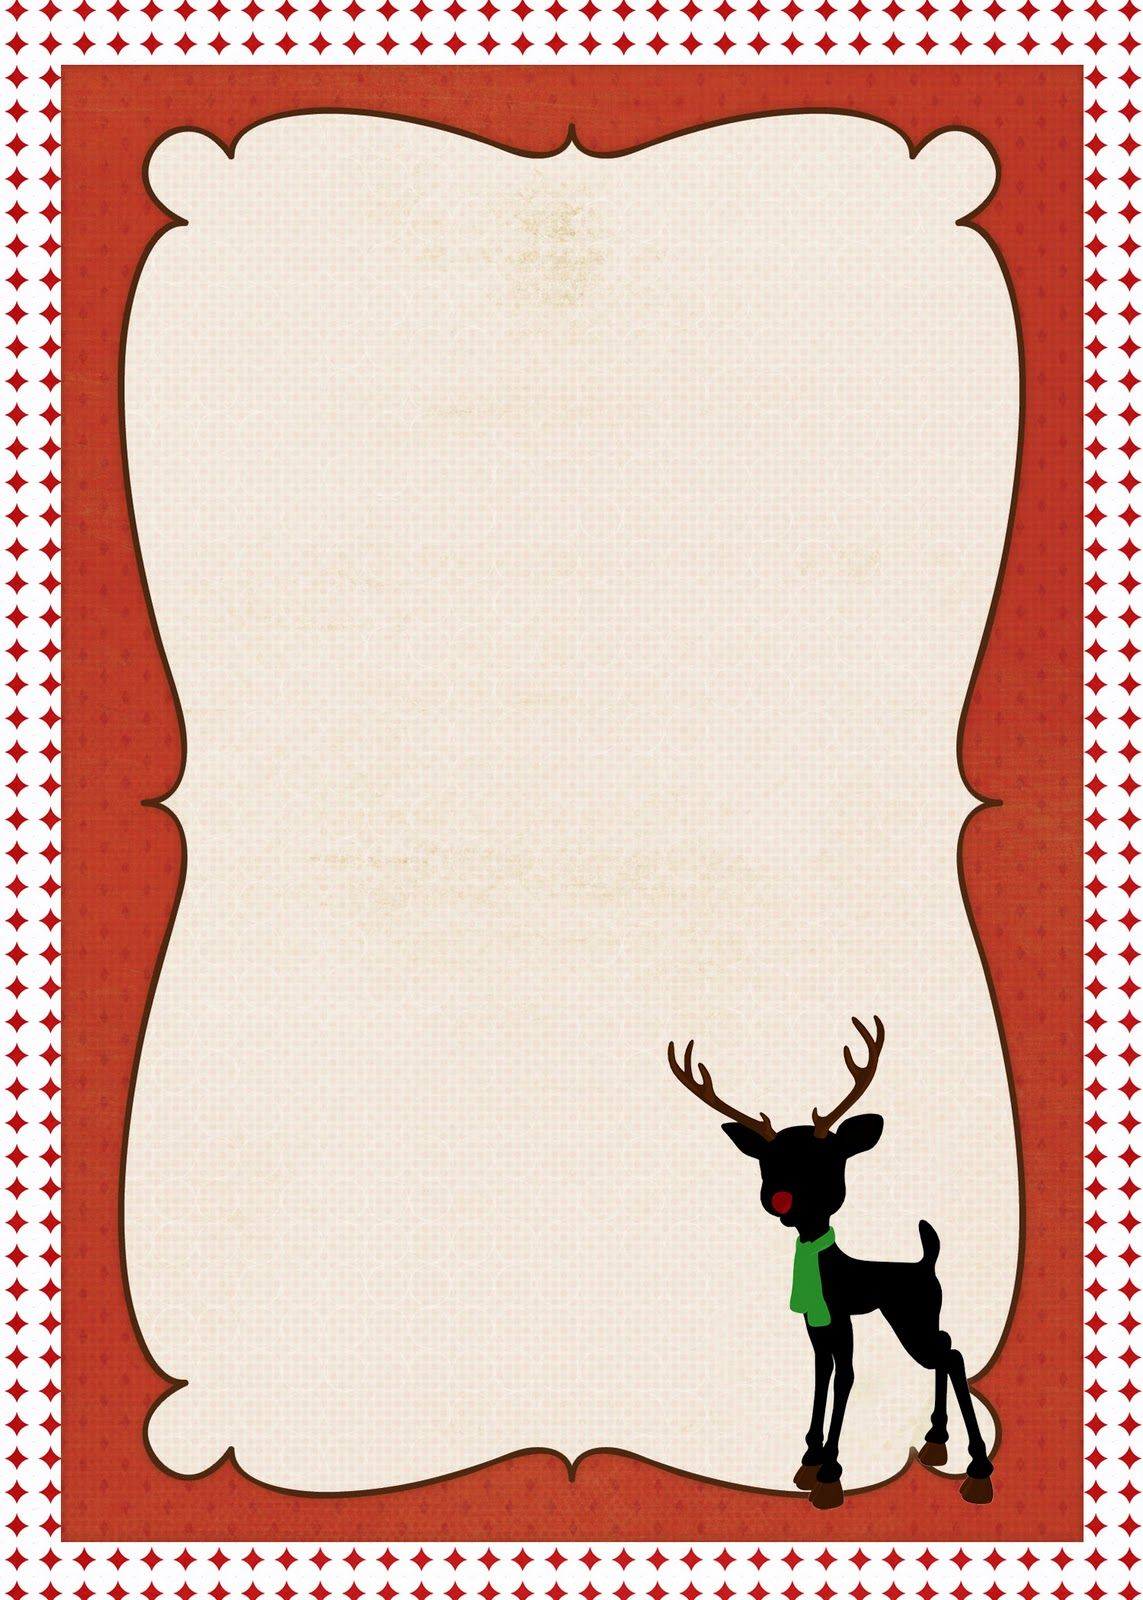 best images about christmas stationary christmas 17 best images about christmas stationary christmas stockings writing papers and christmas stationery